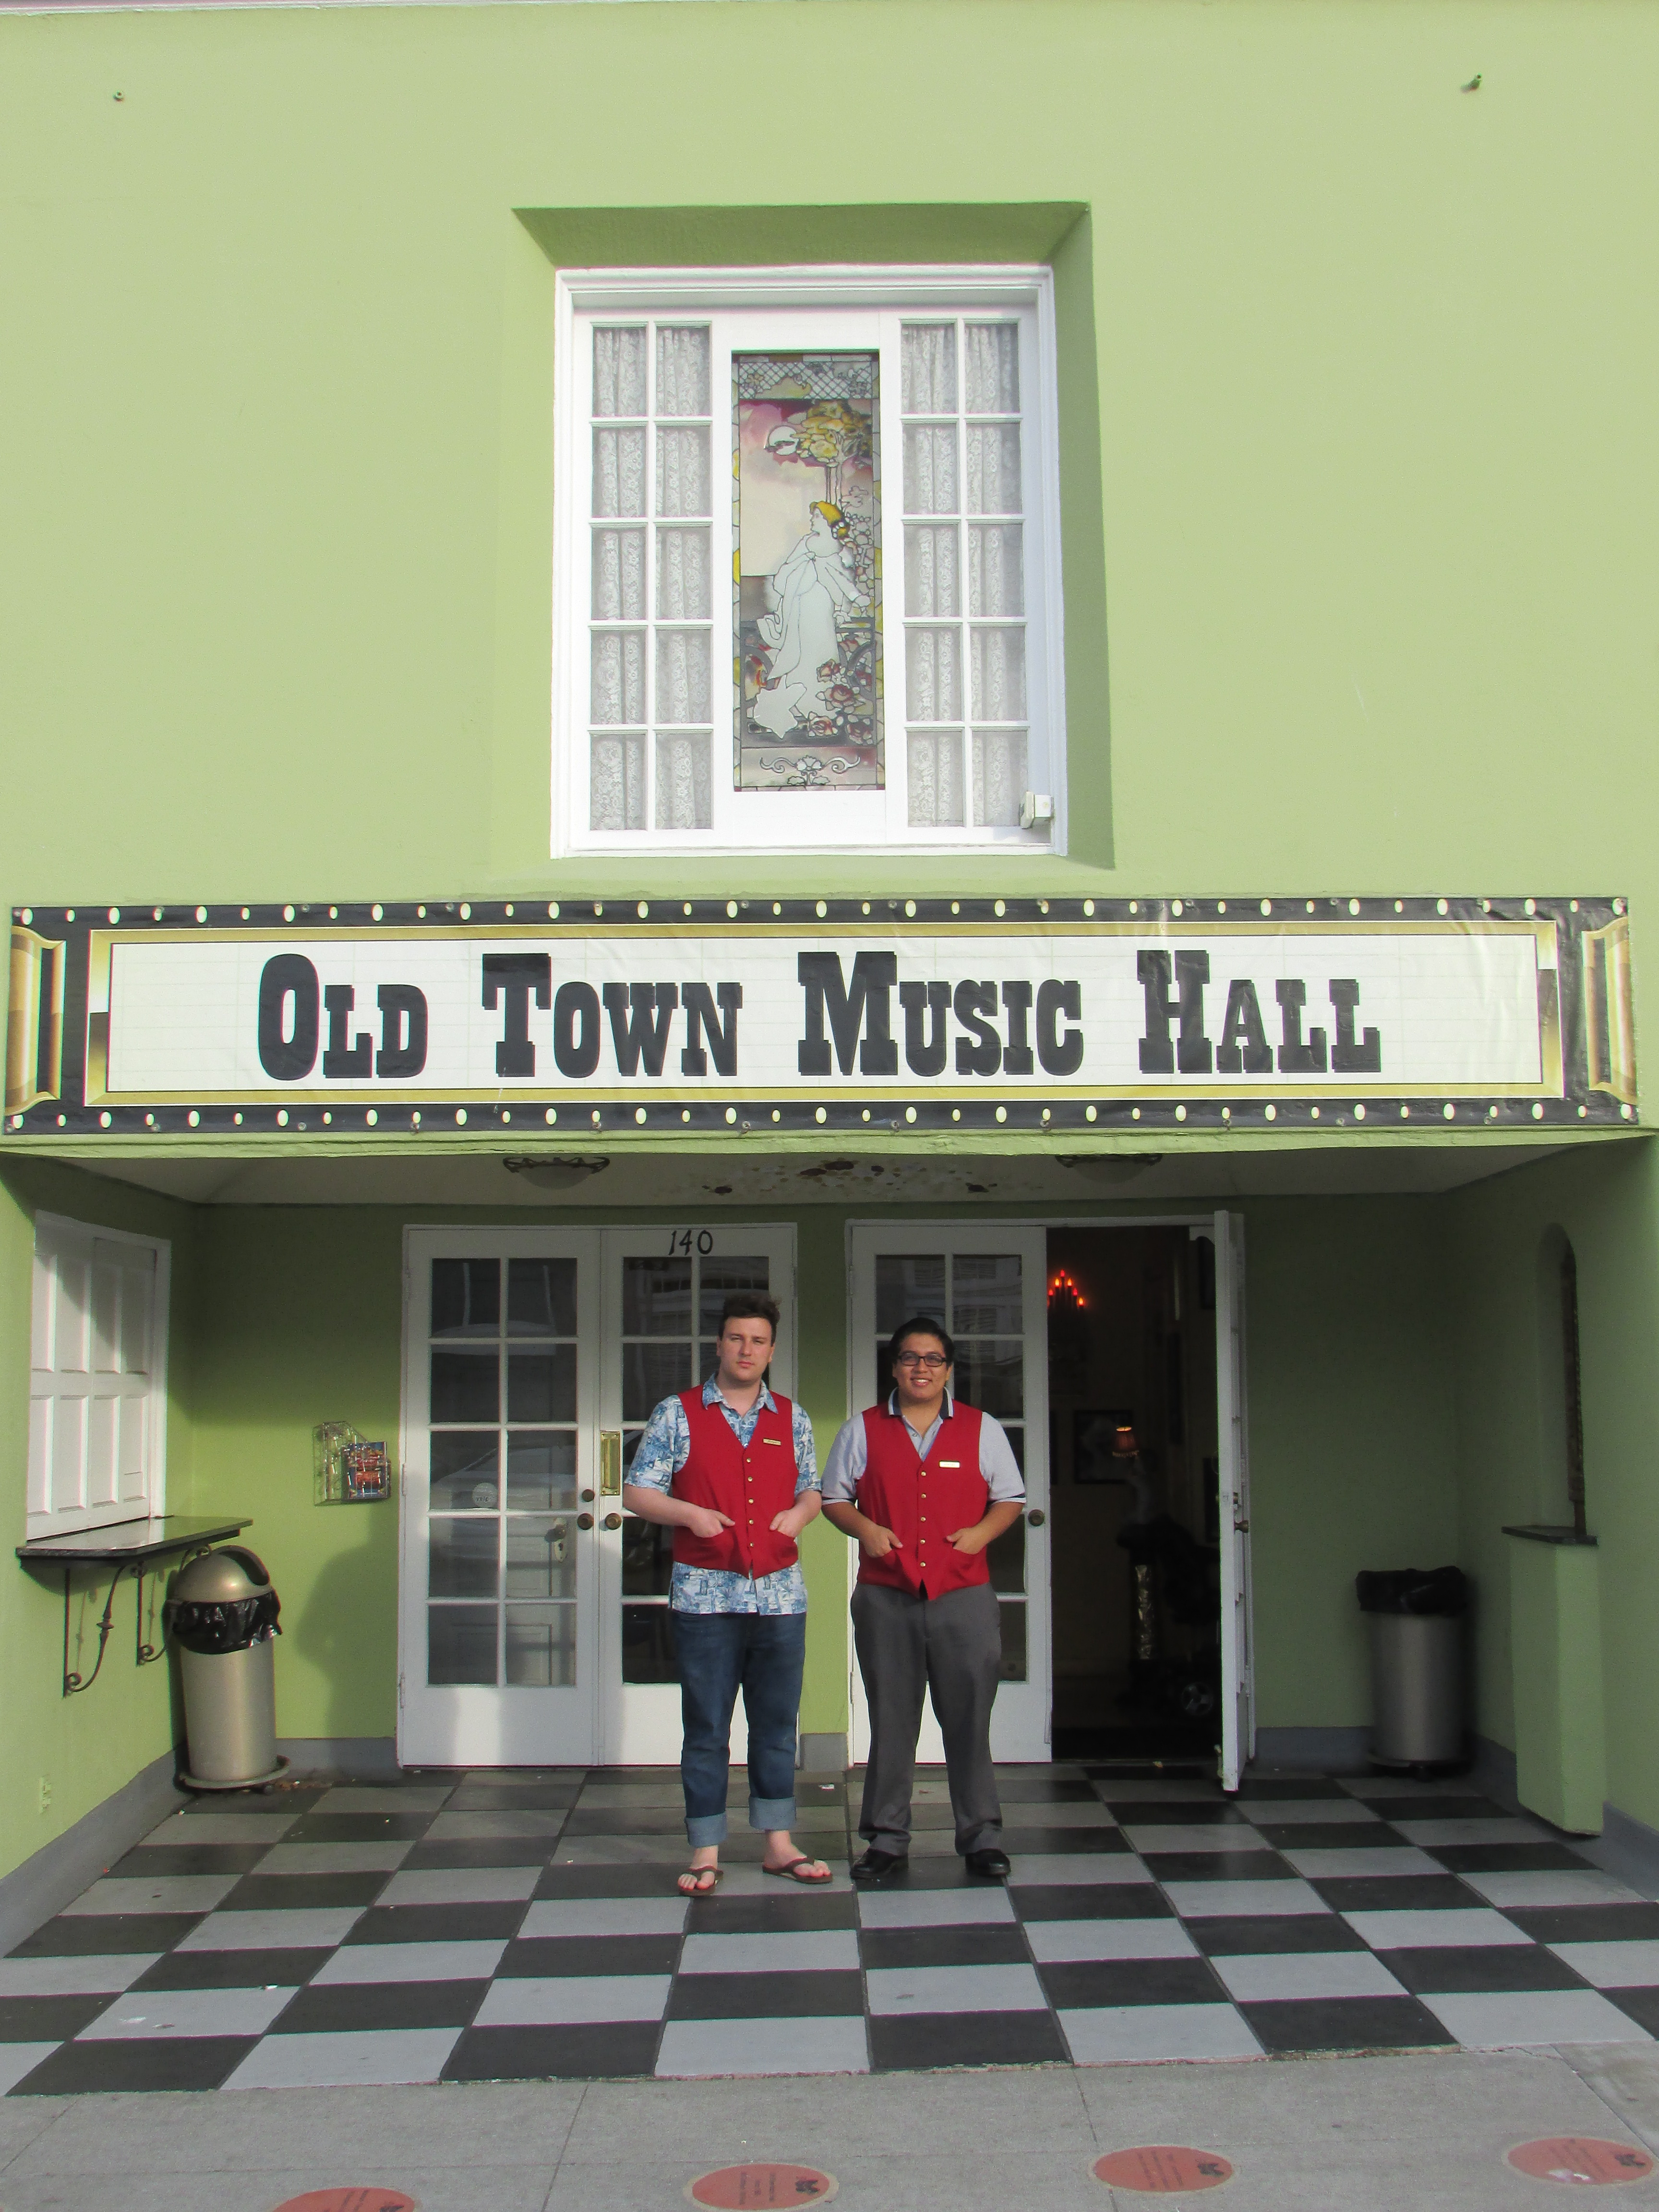 old town music hall  u2013 welcome to arthur verge u0026 39 s website